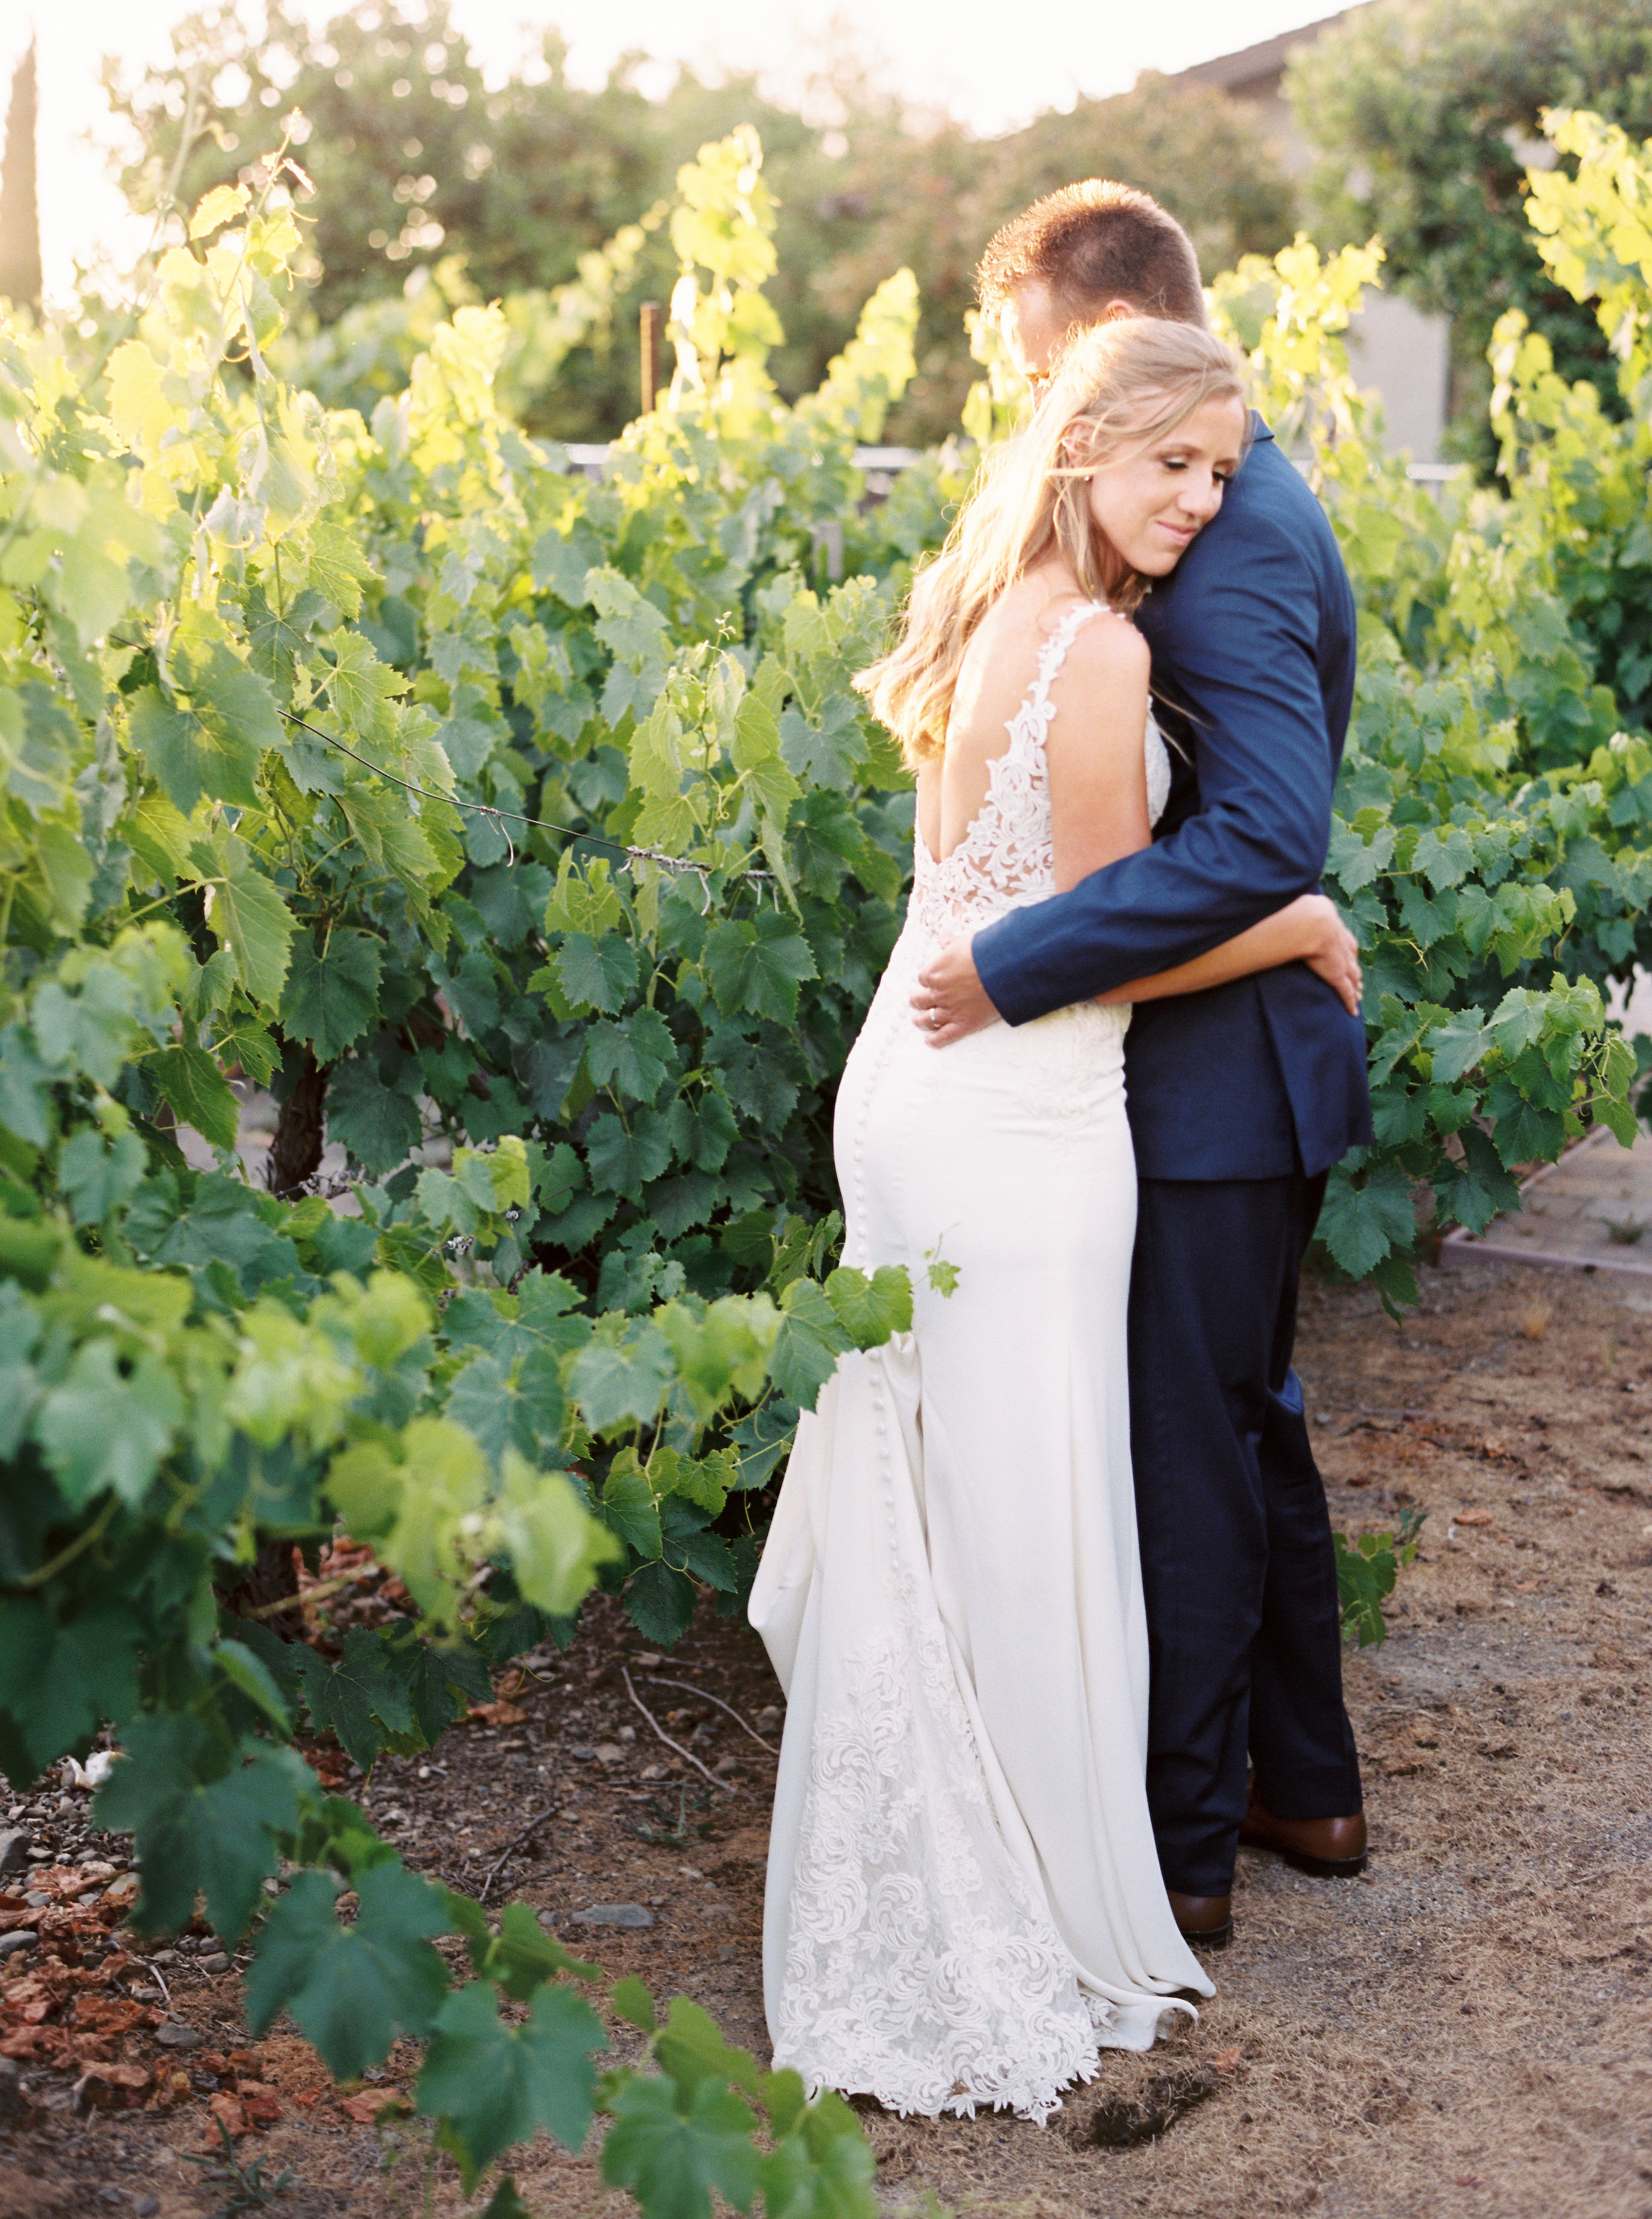 Crooked-vine-winery-wedding-in-livermore-california-69.jpg